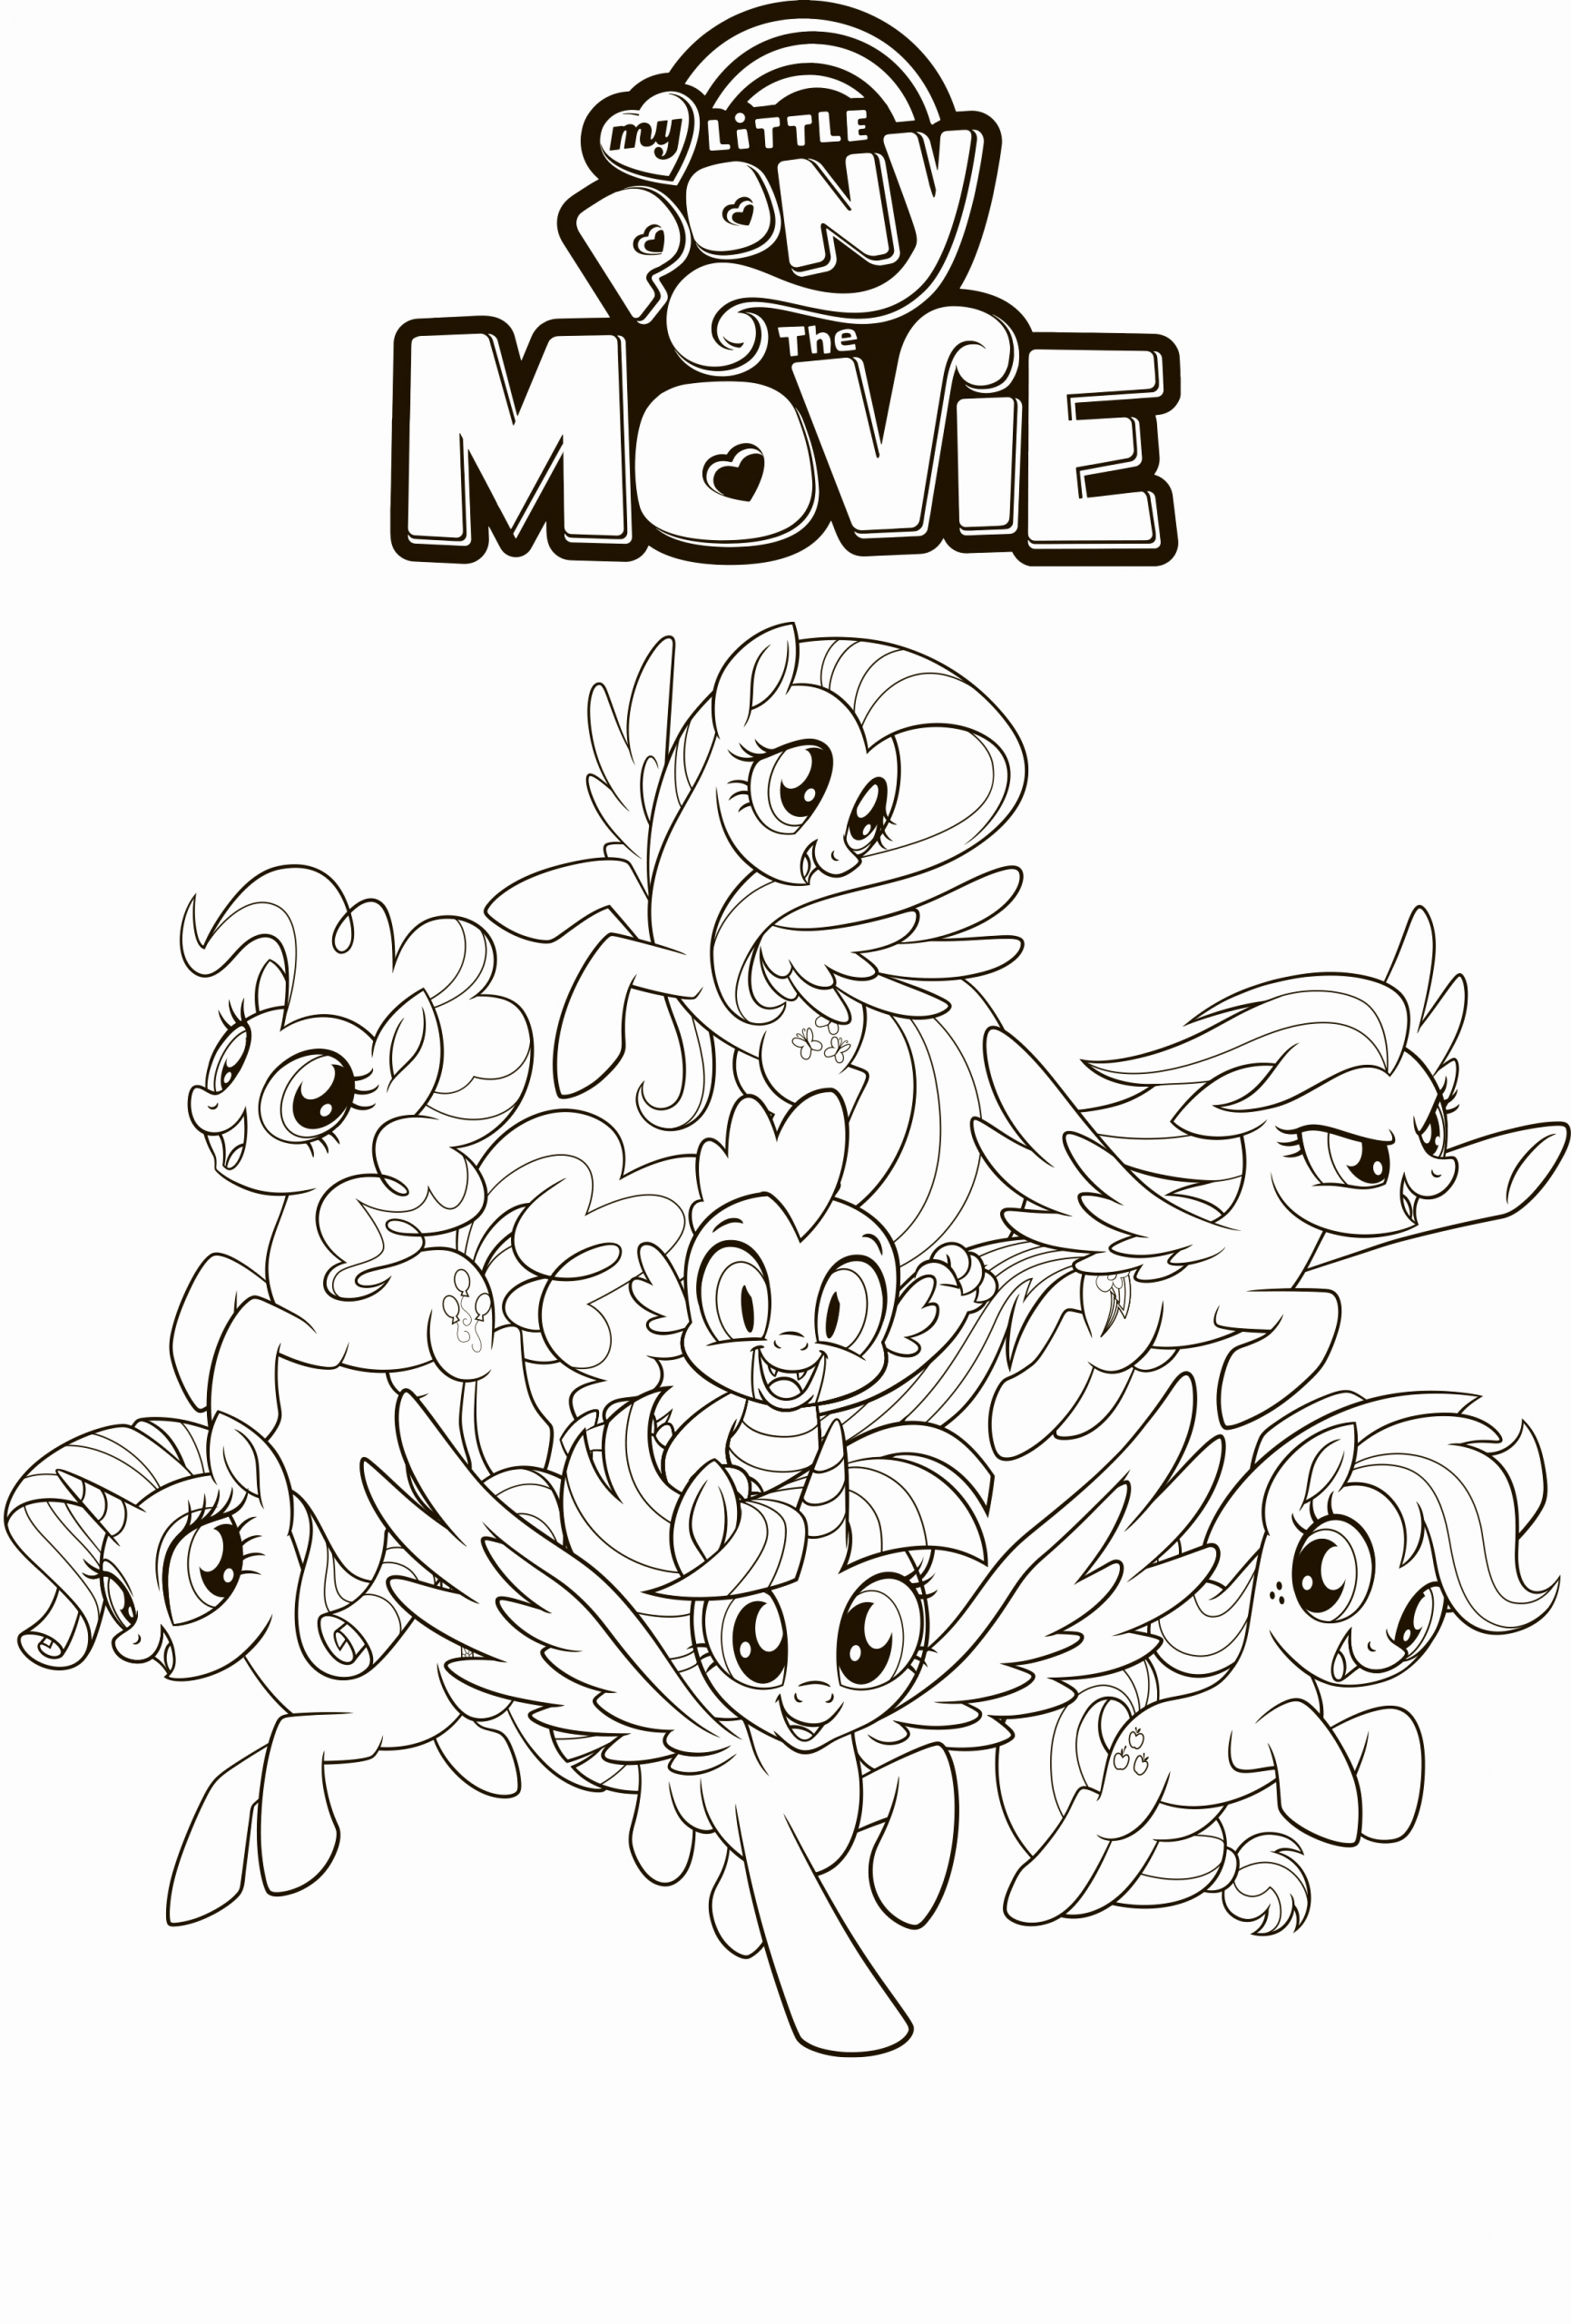 My Little Pony Coloring Pages Kids In 2020 My Little Pony Coloring My Little Pony Movie My Little Pony Characters